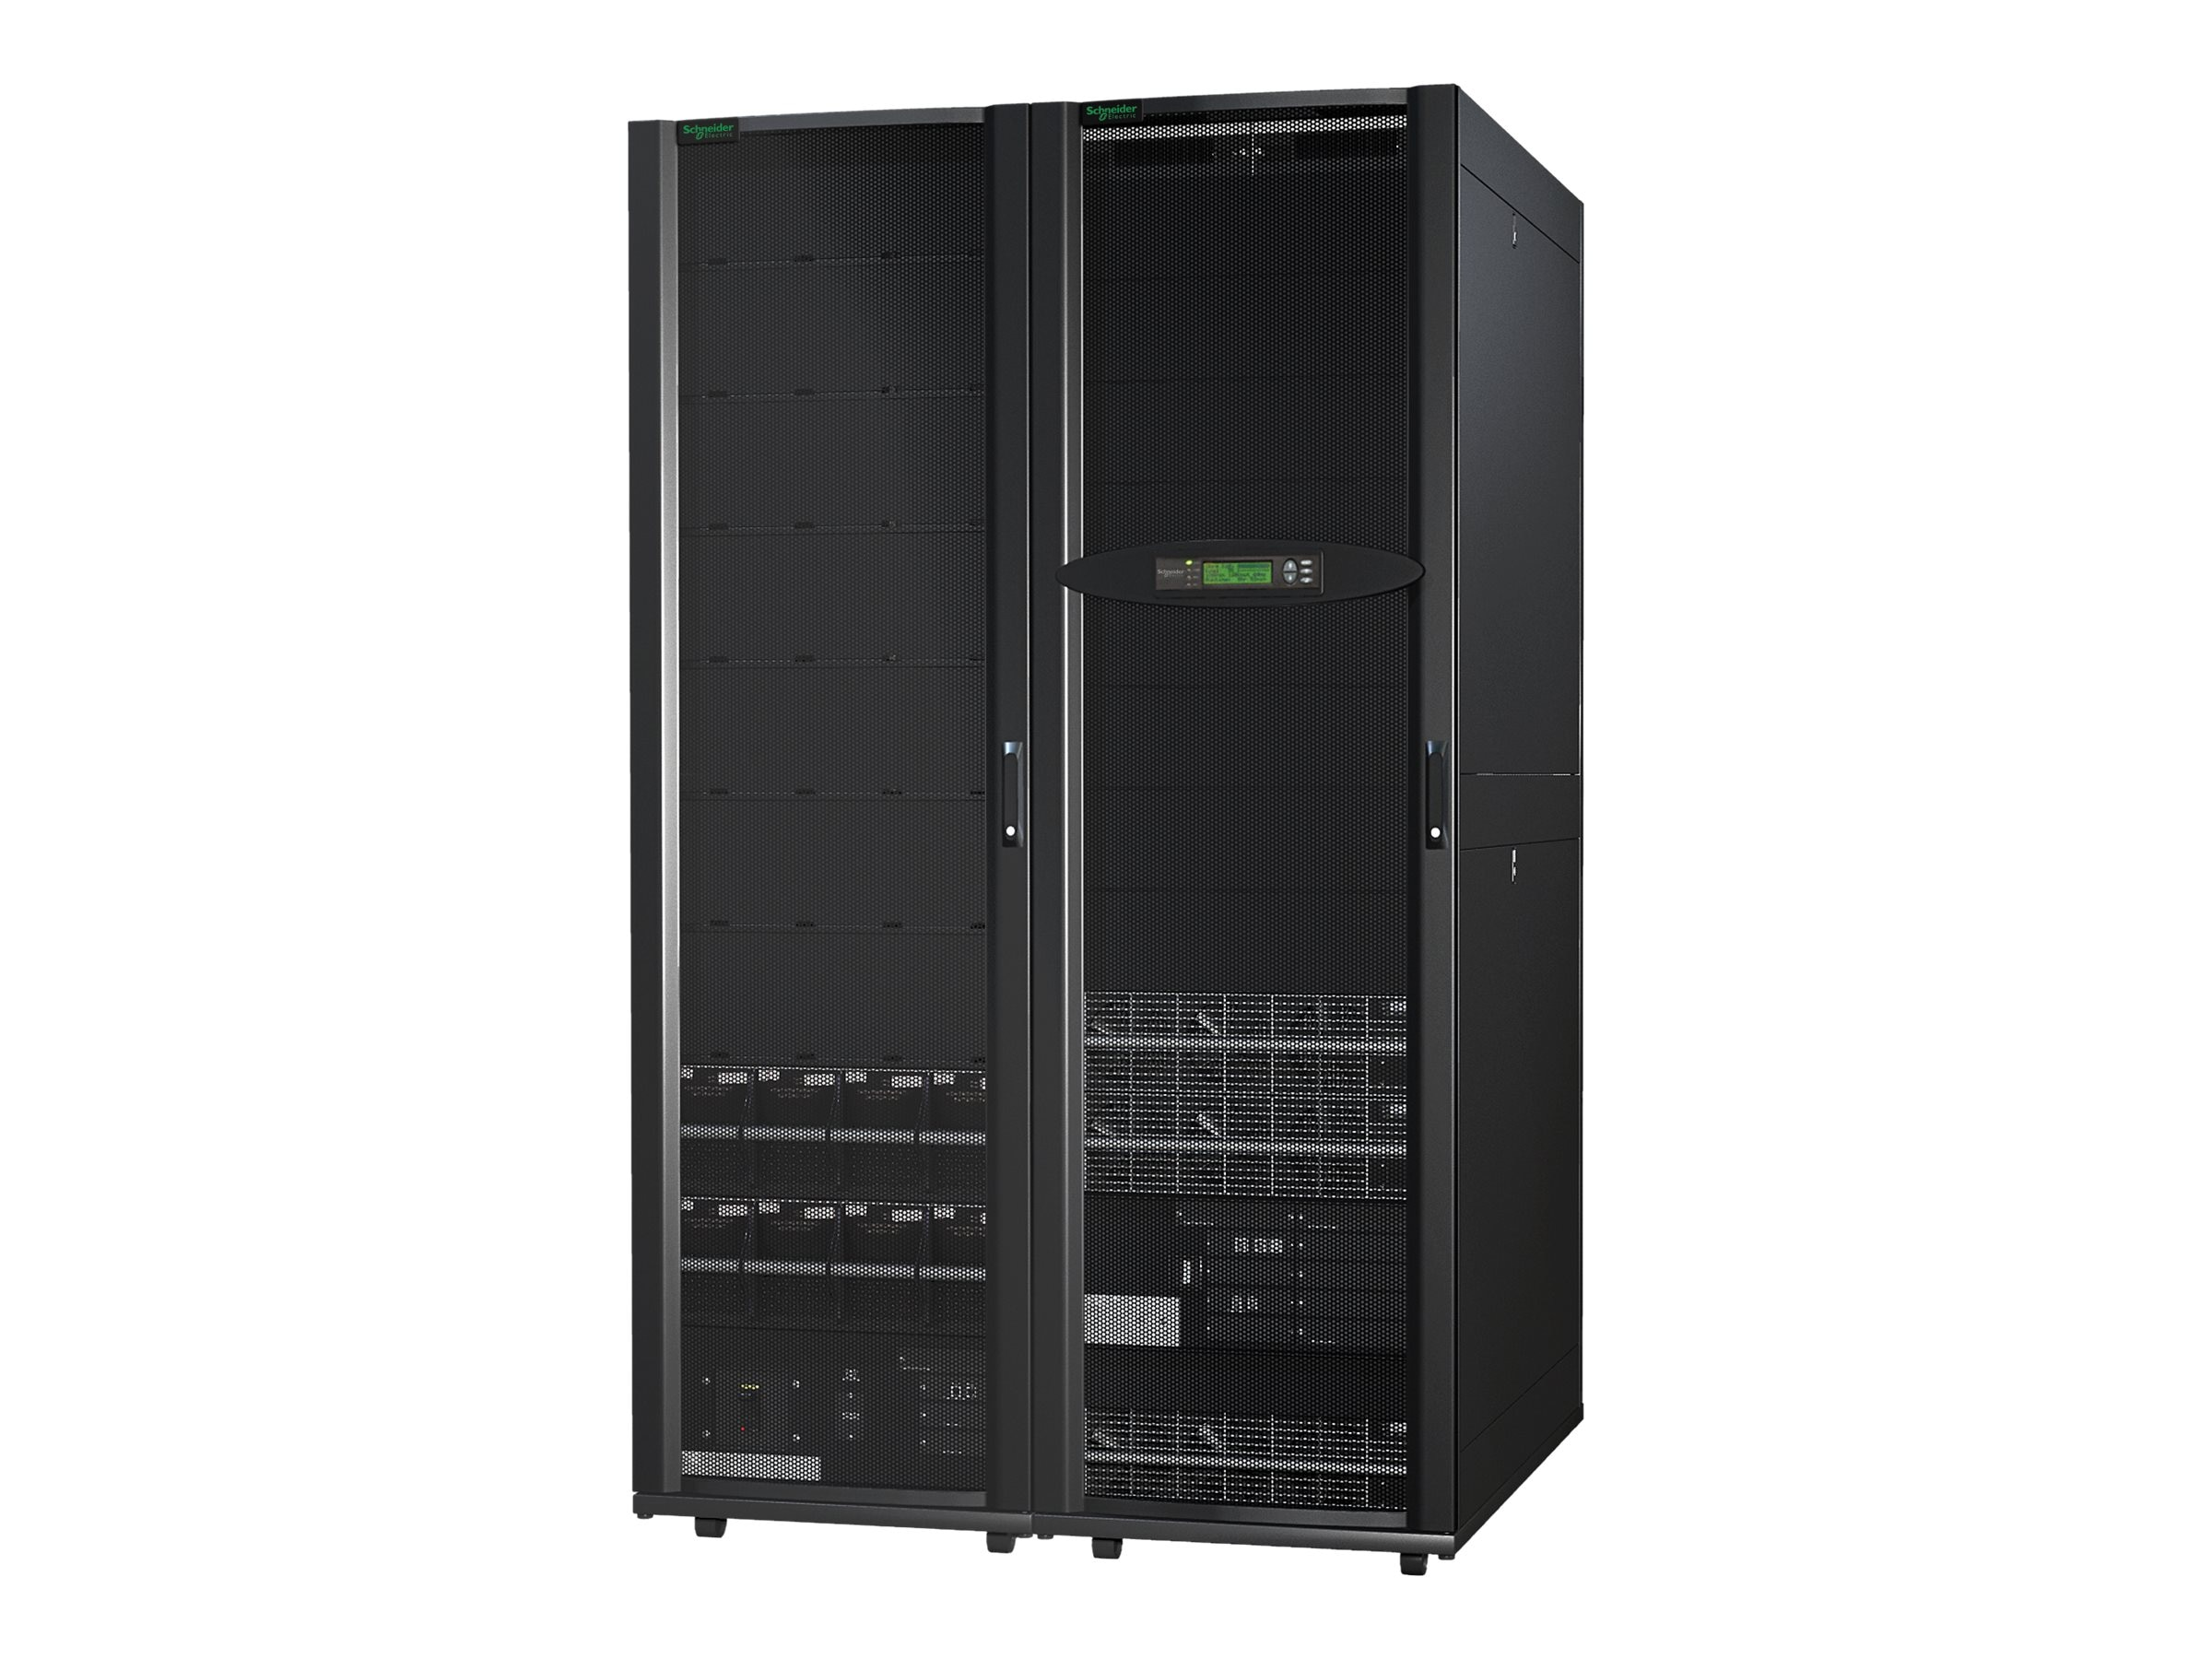 APC Symmetra PX 20kW Scalable to 100kW, 208V with Web SNMP Card, Startup